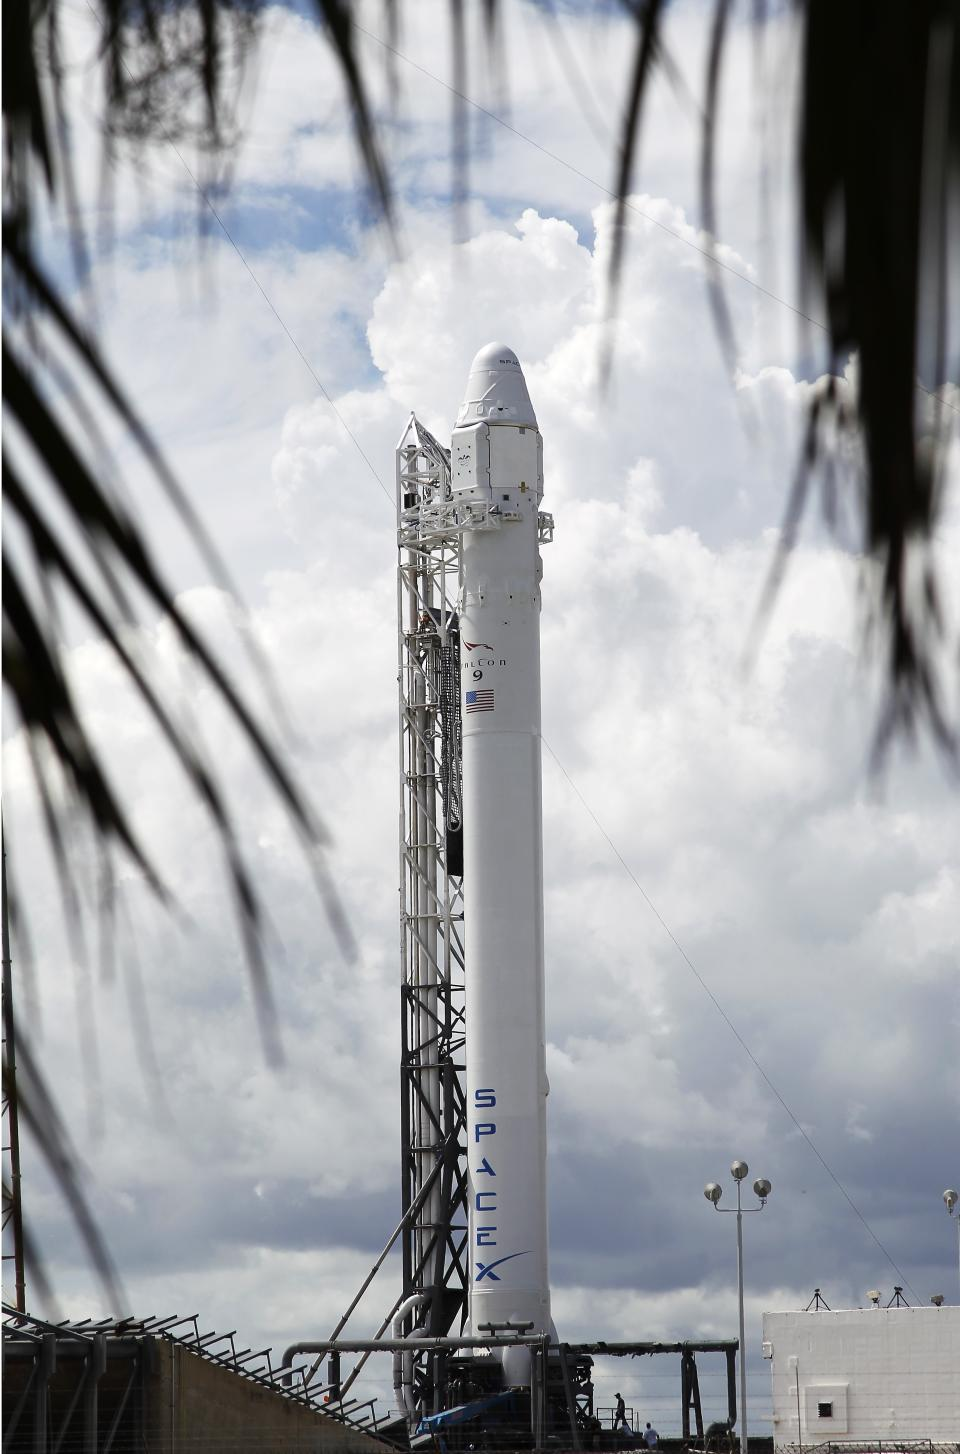 The Falcon 9 SpaceX rocket stands on space launch complex 40 ready for launch at the Cape Canaveral Air Force Station in Cape Canaveral, Fla. on Sunday, Oct. 7, 2012. Launch is scheduled for 8:35 PM Sunday on a supply mission to the International Space Station. (AP Photo/Terry Renna)